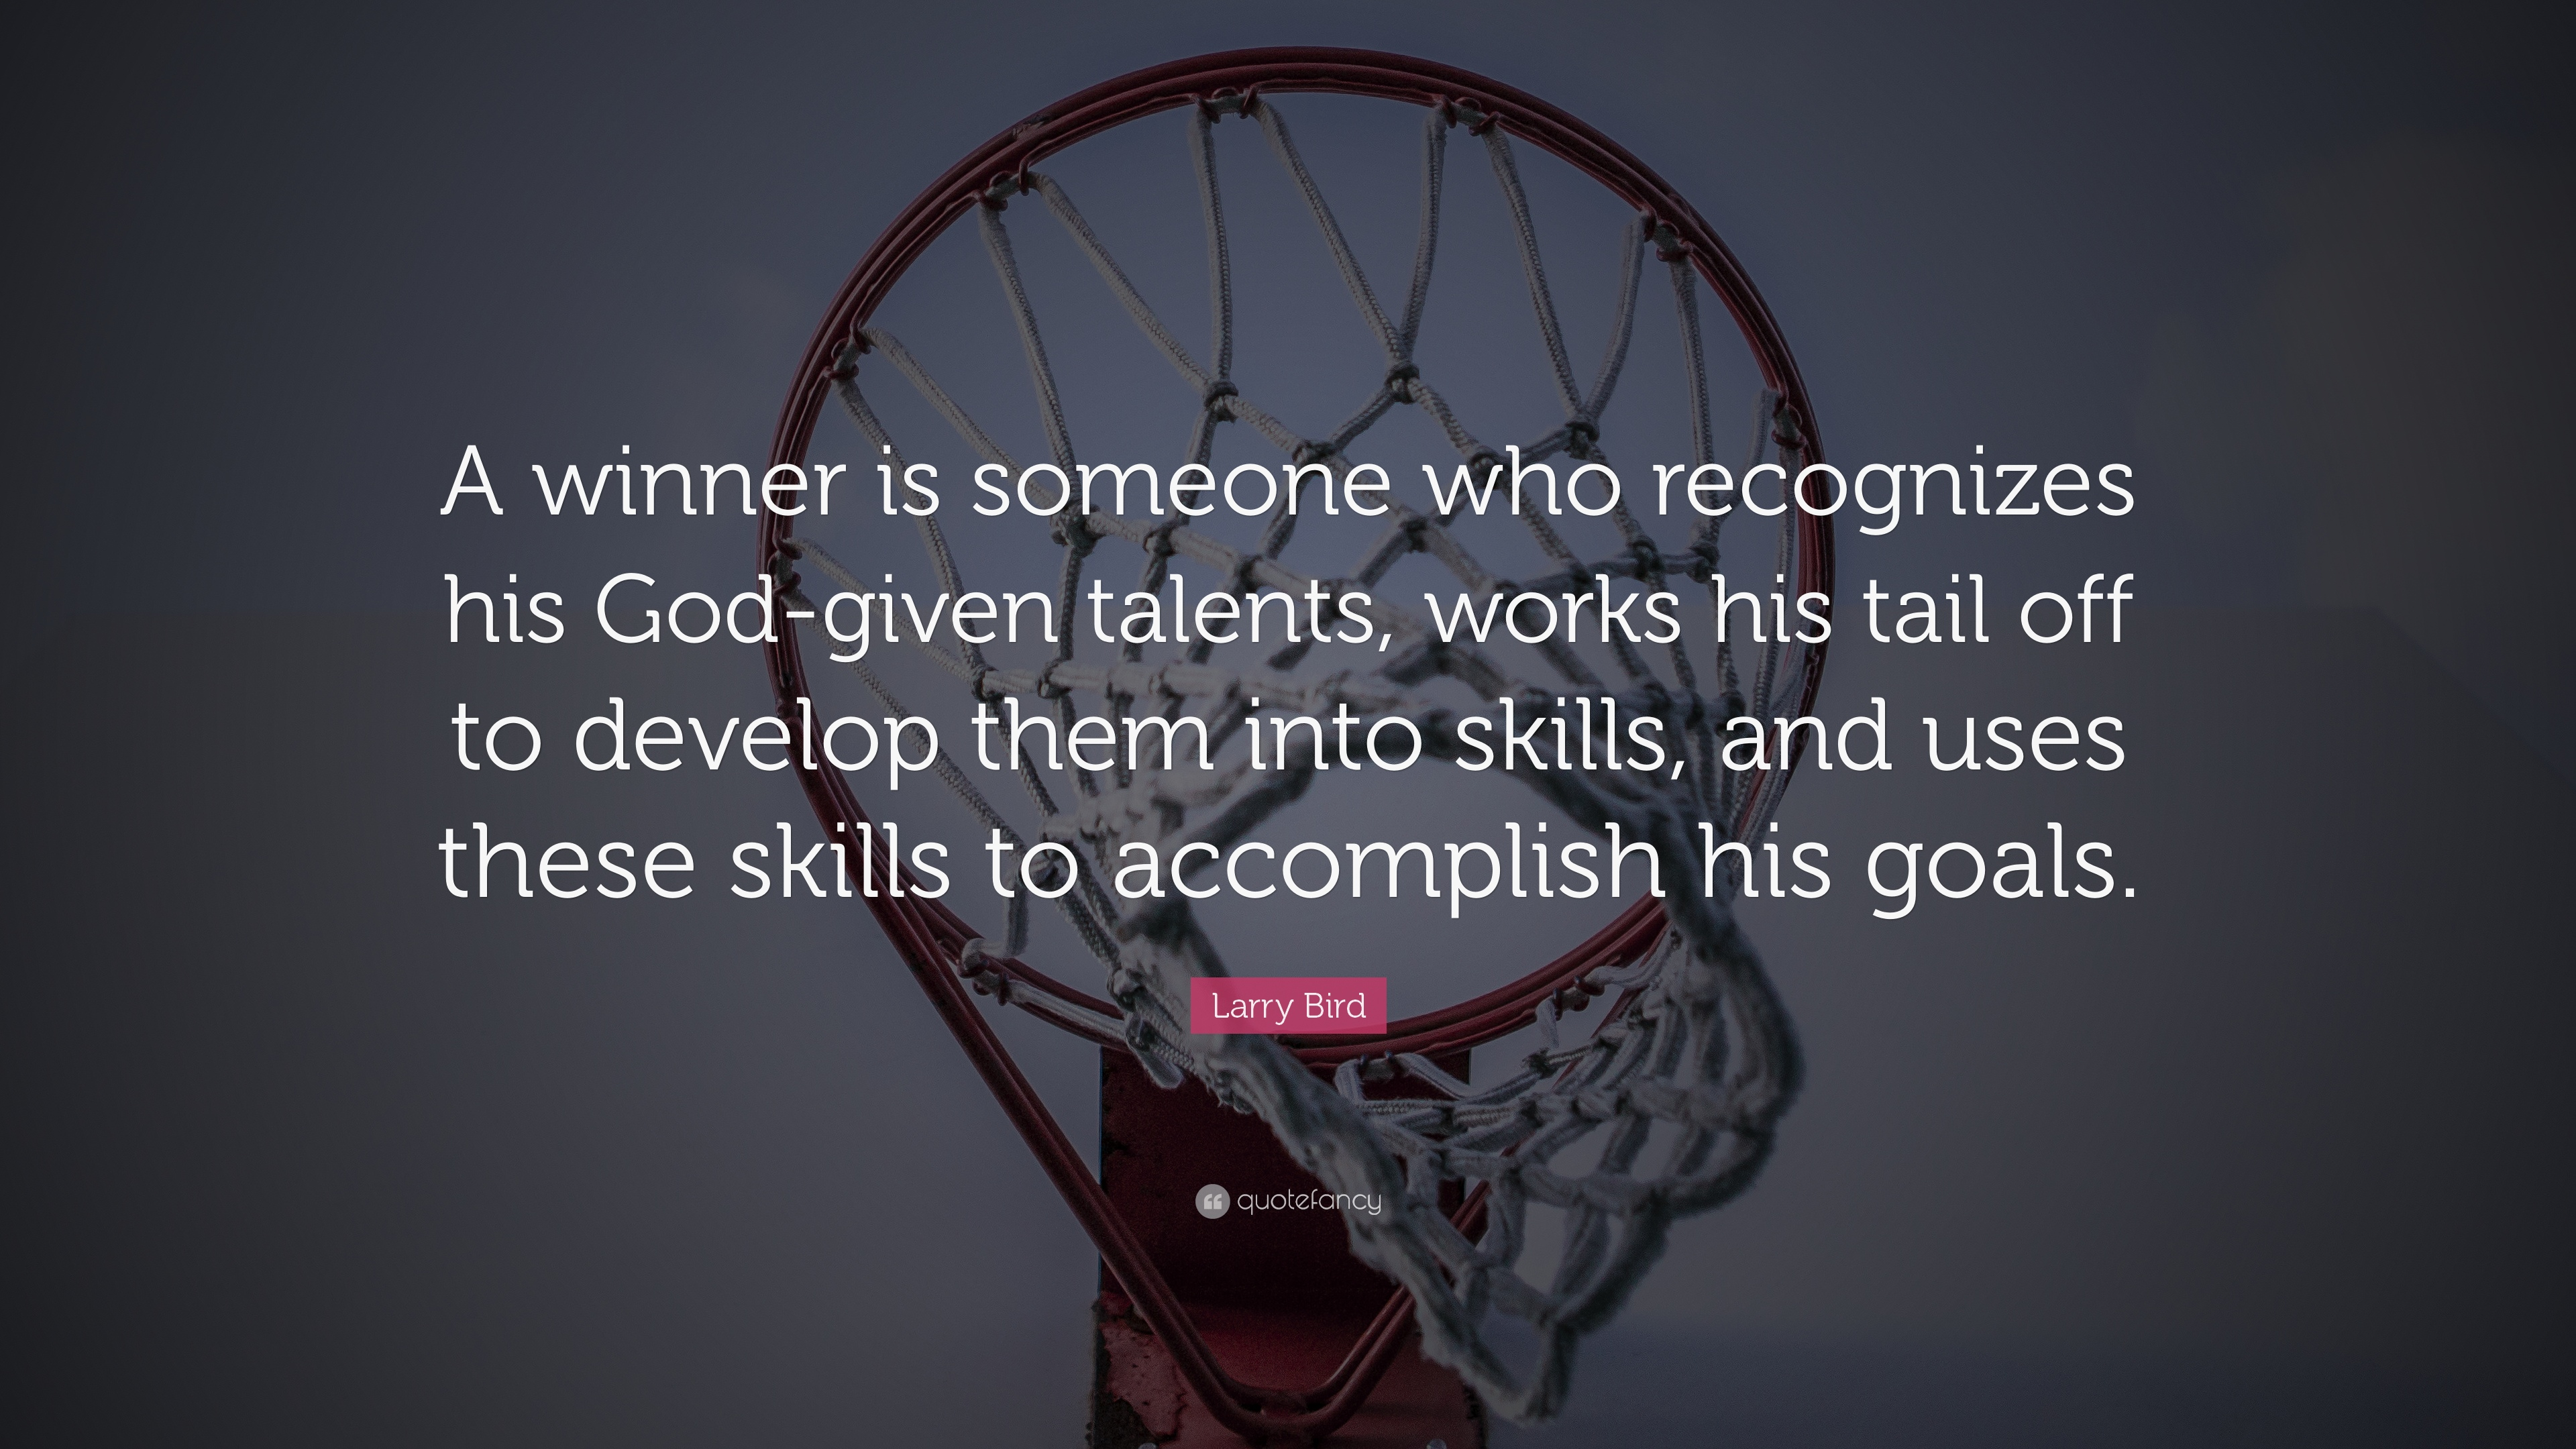 Quotes For Basketball Basketball Quotes 40 Wallpapers  Quotefancy